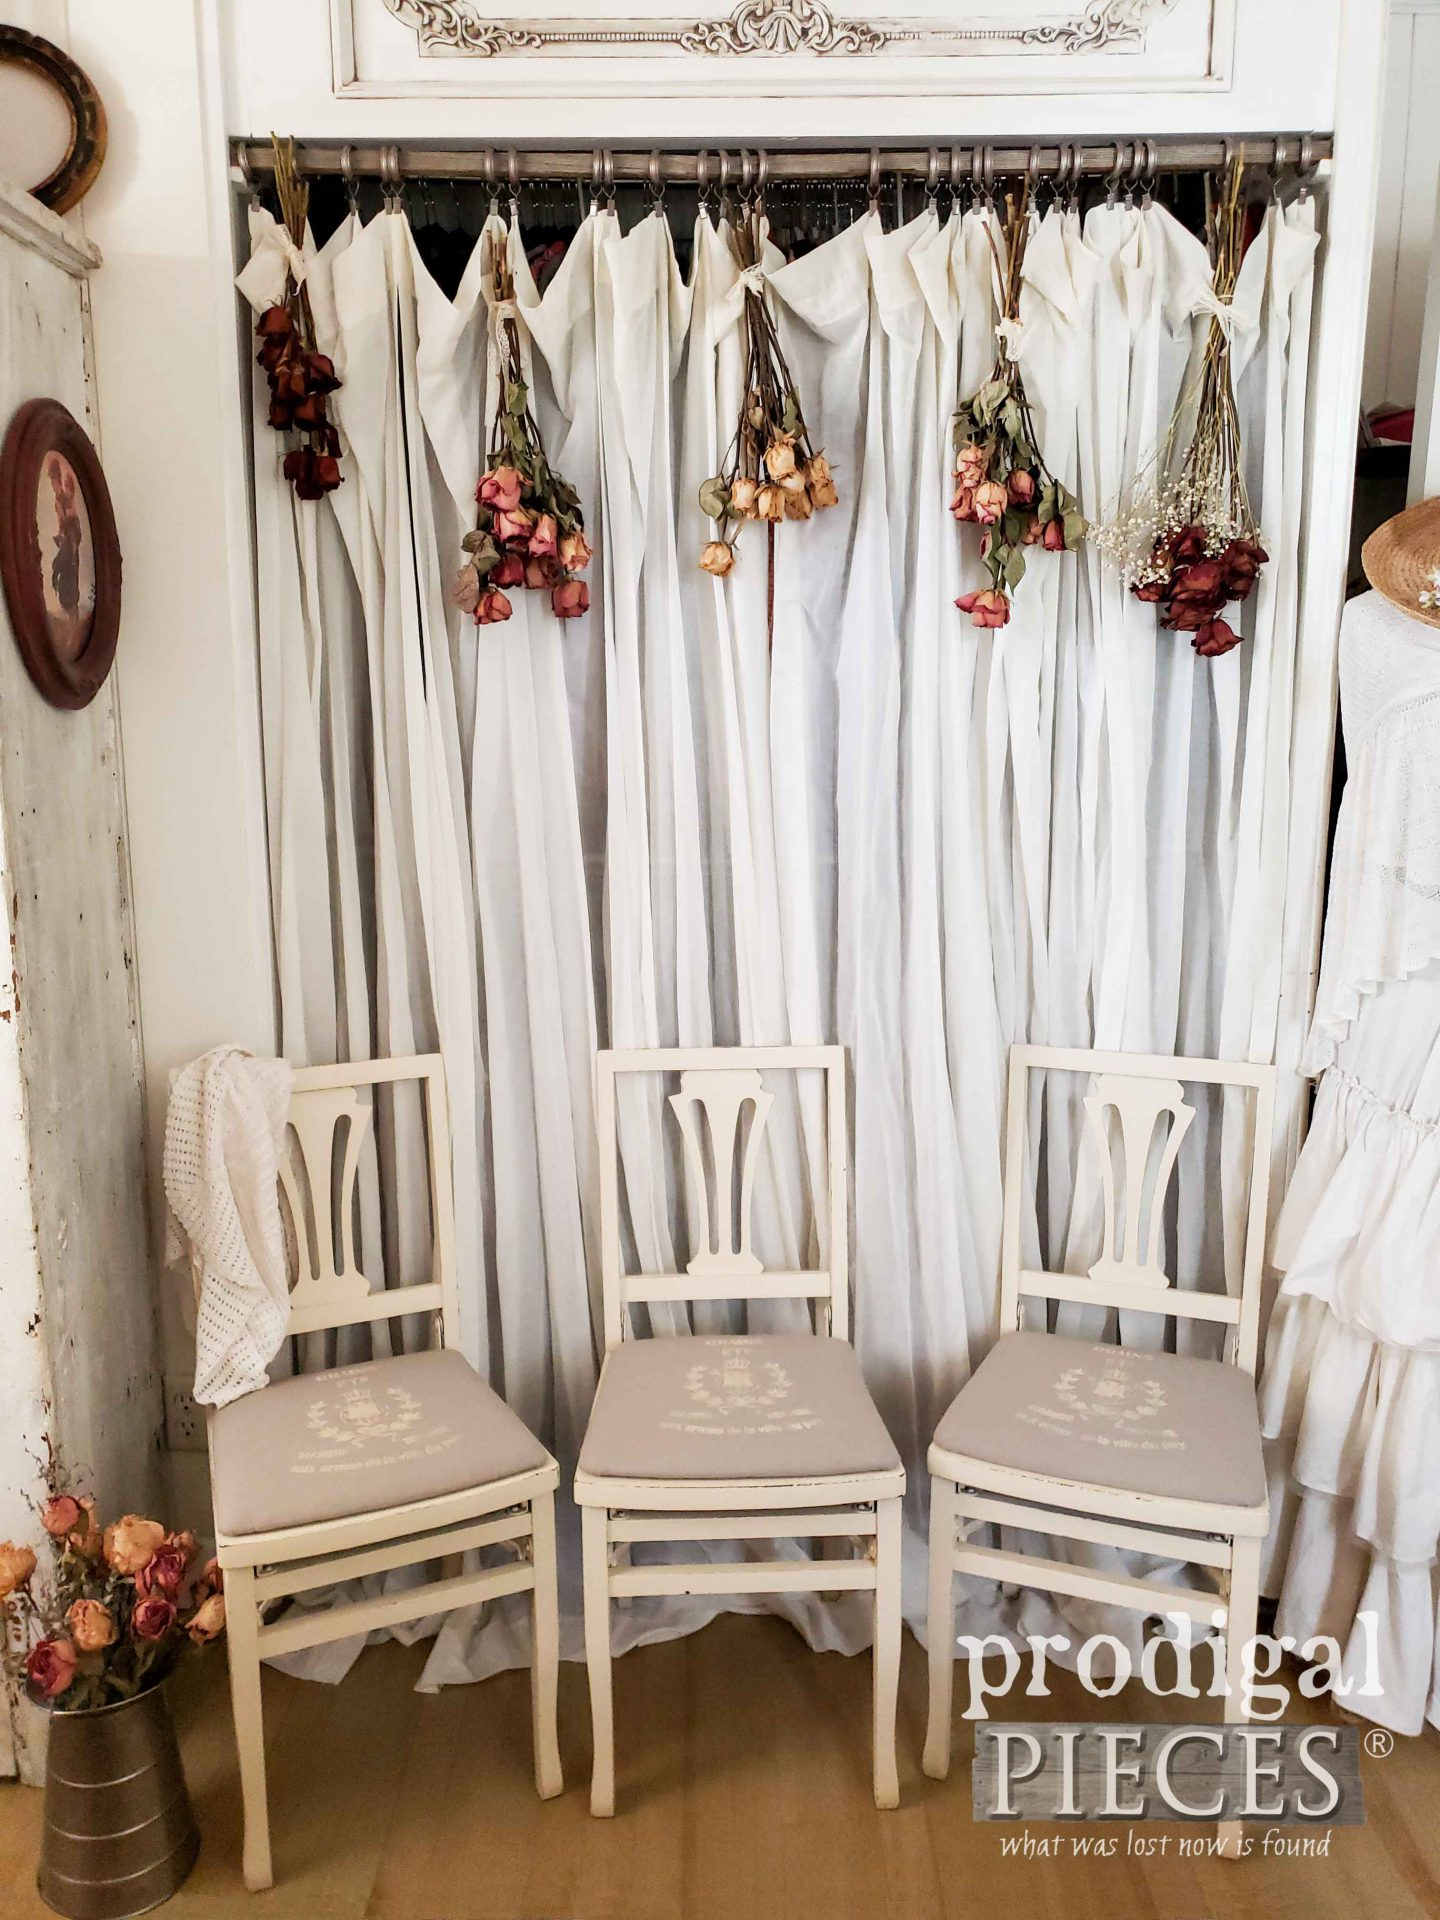 French Farmhouse Vintage Folding Chairs by Solid Kumfort and refreshed by Larissa of Prodigal Pieces | prodigalpieces.com #prodigalpieces #furniture #home #homedecor #farmhouse #french #diy #vintage #midcentury